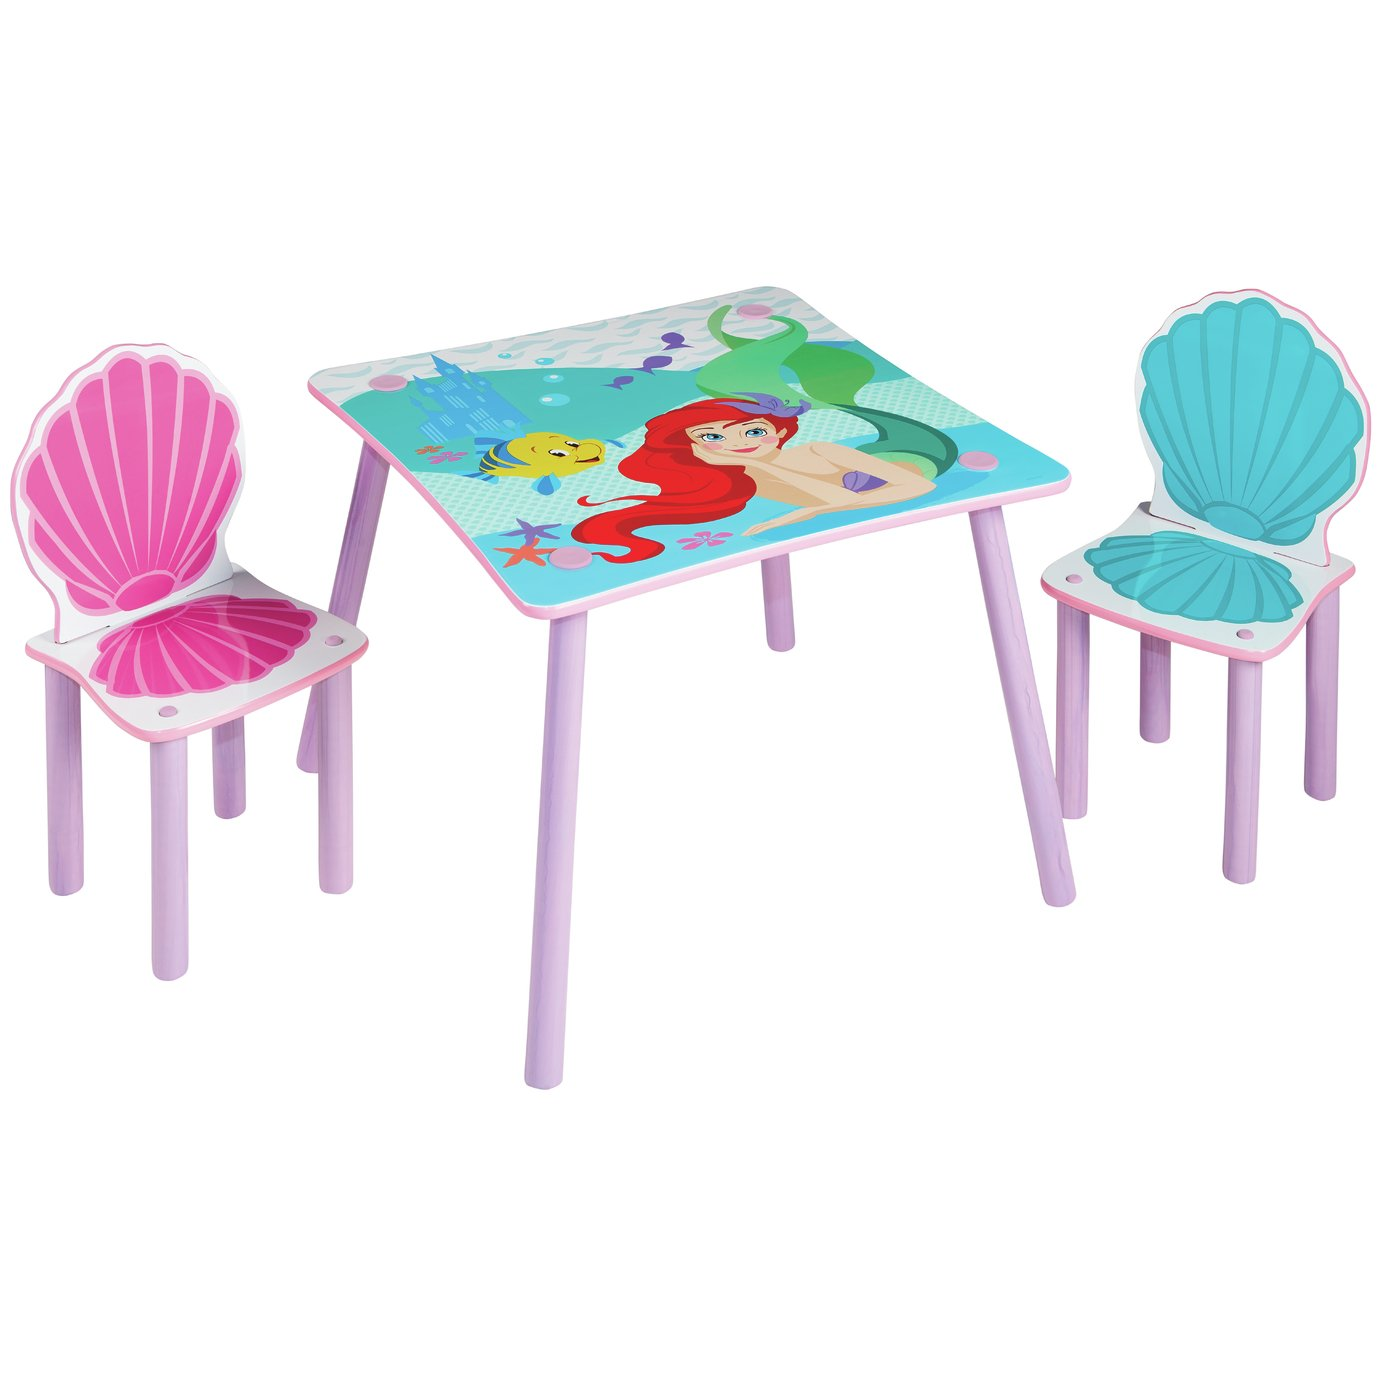 Disney Princess Table and 2 Chairs from Disney Princess